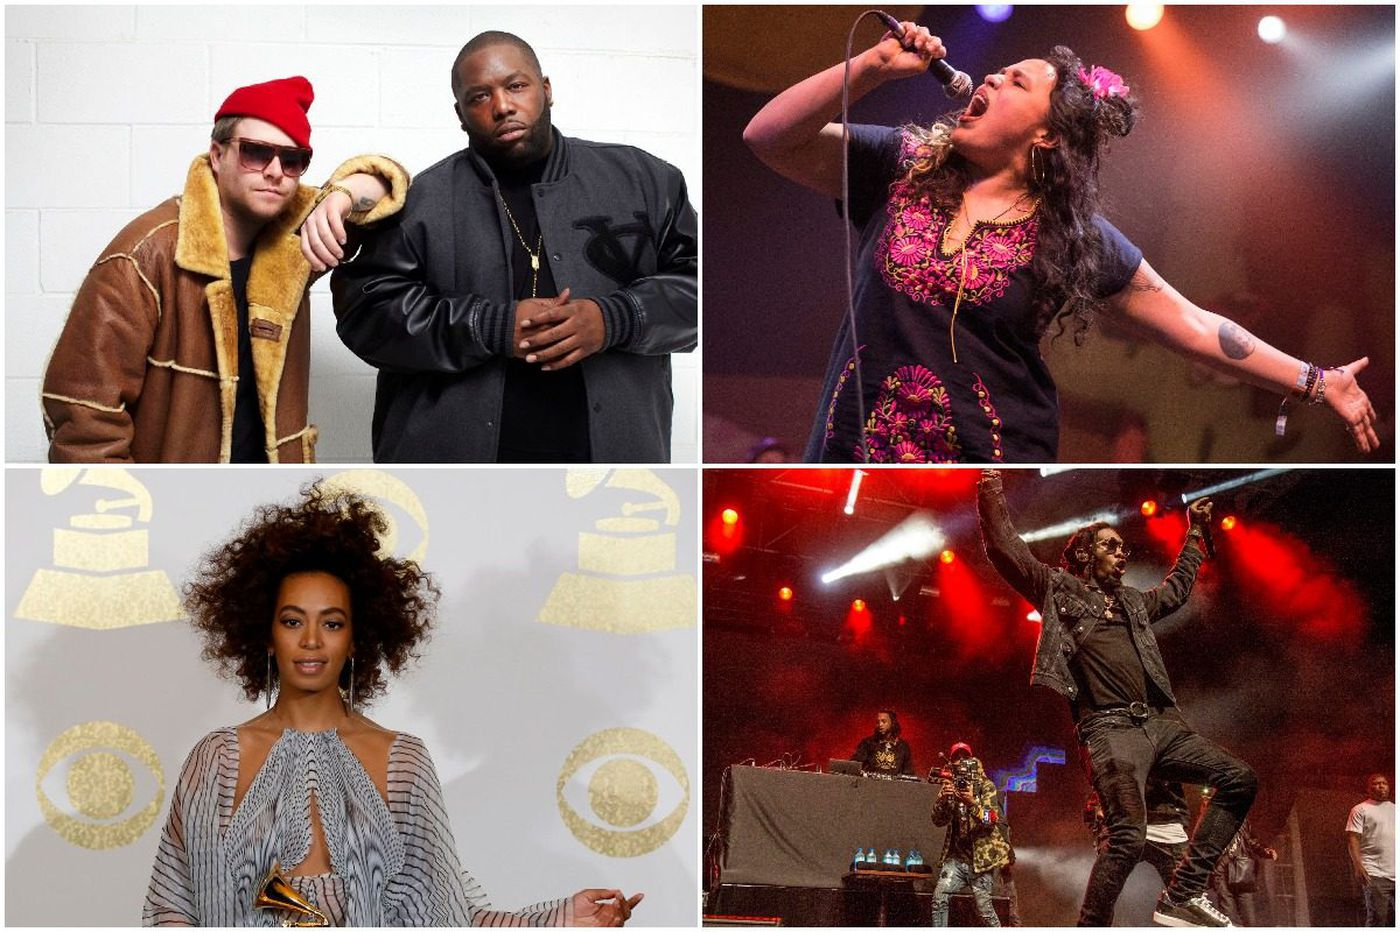 Solange, Run The Jewels, and 8 other acts besides Jay Z and J. Cole to see at Made In America